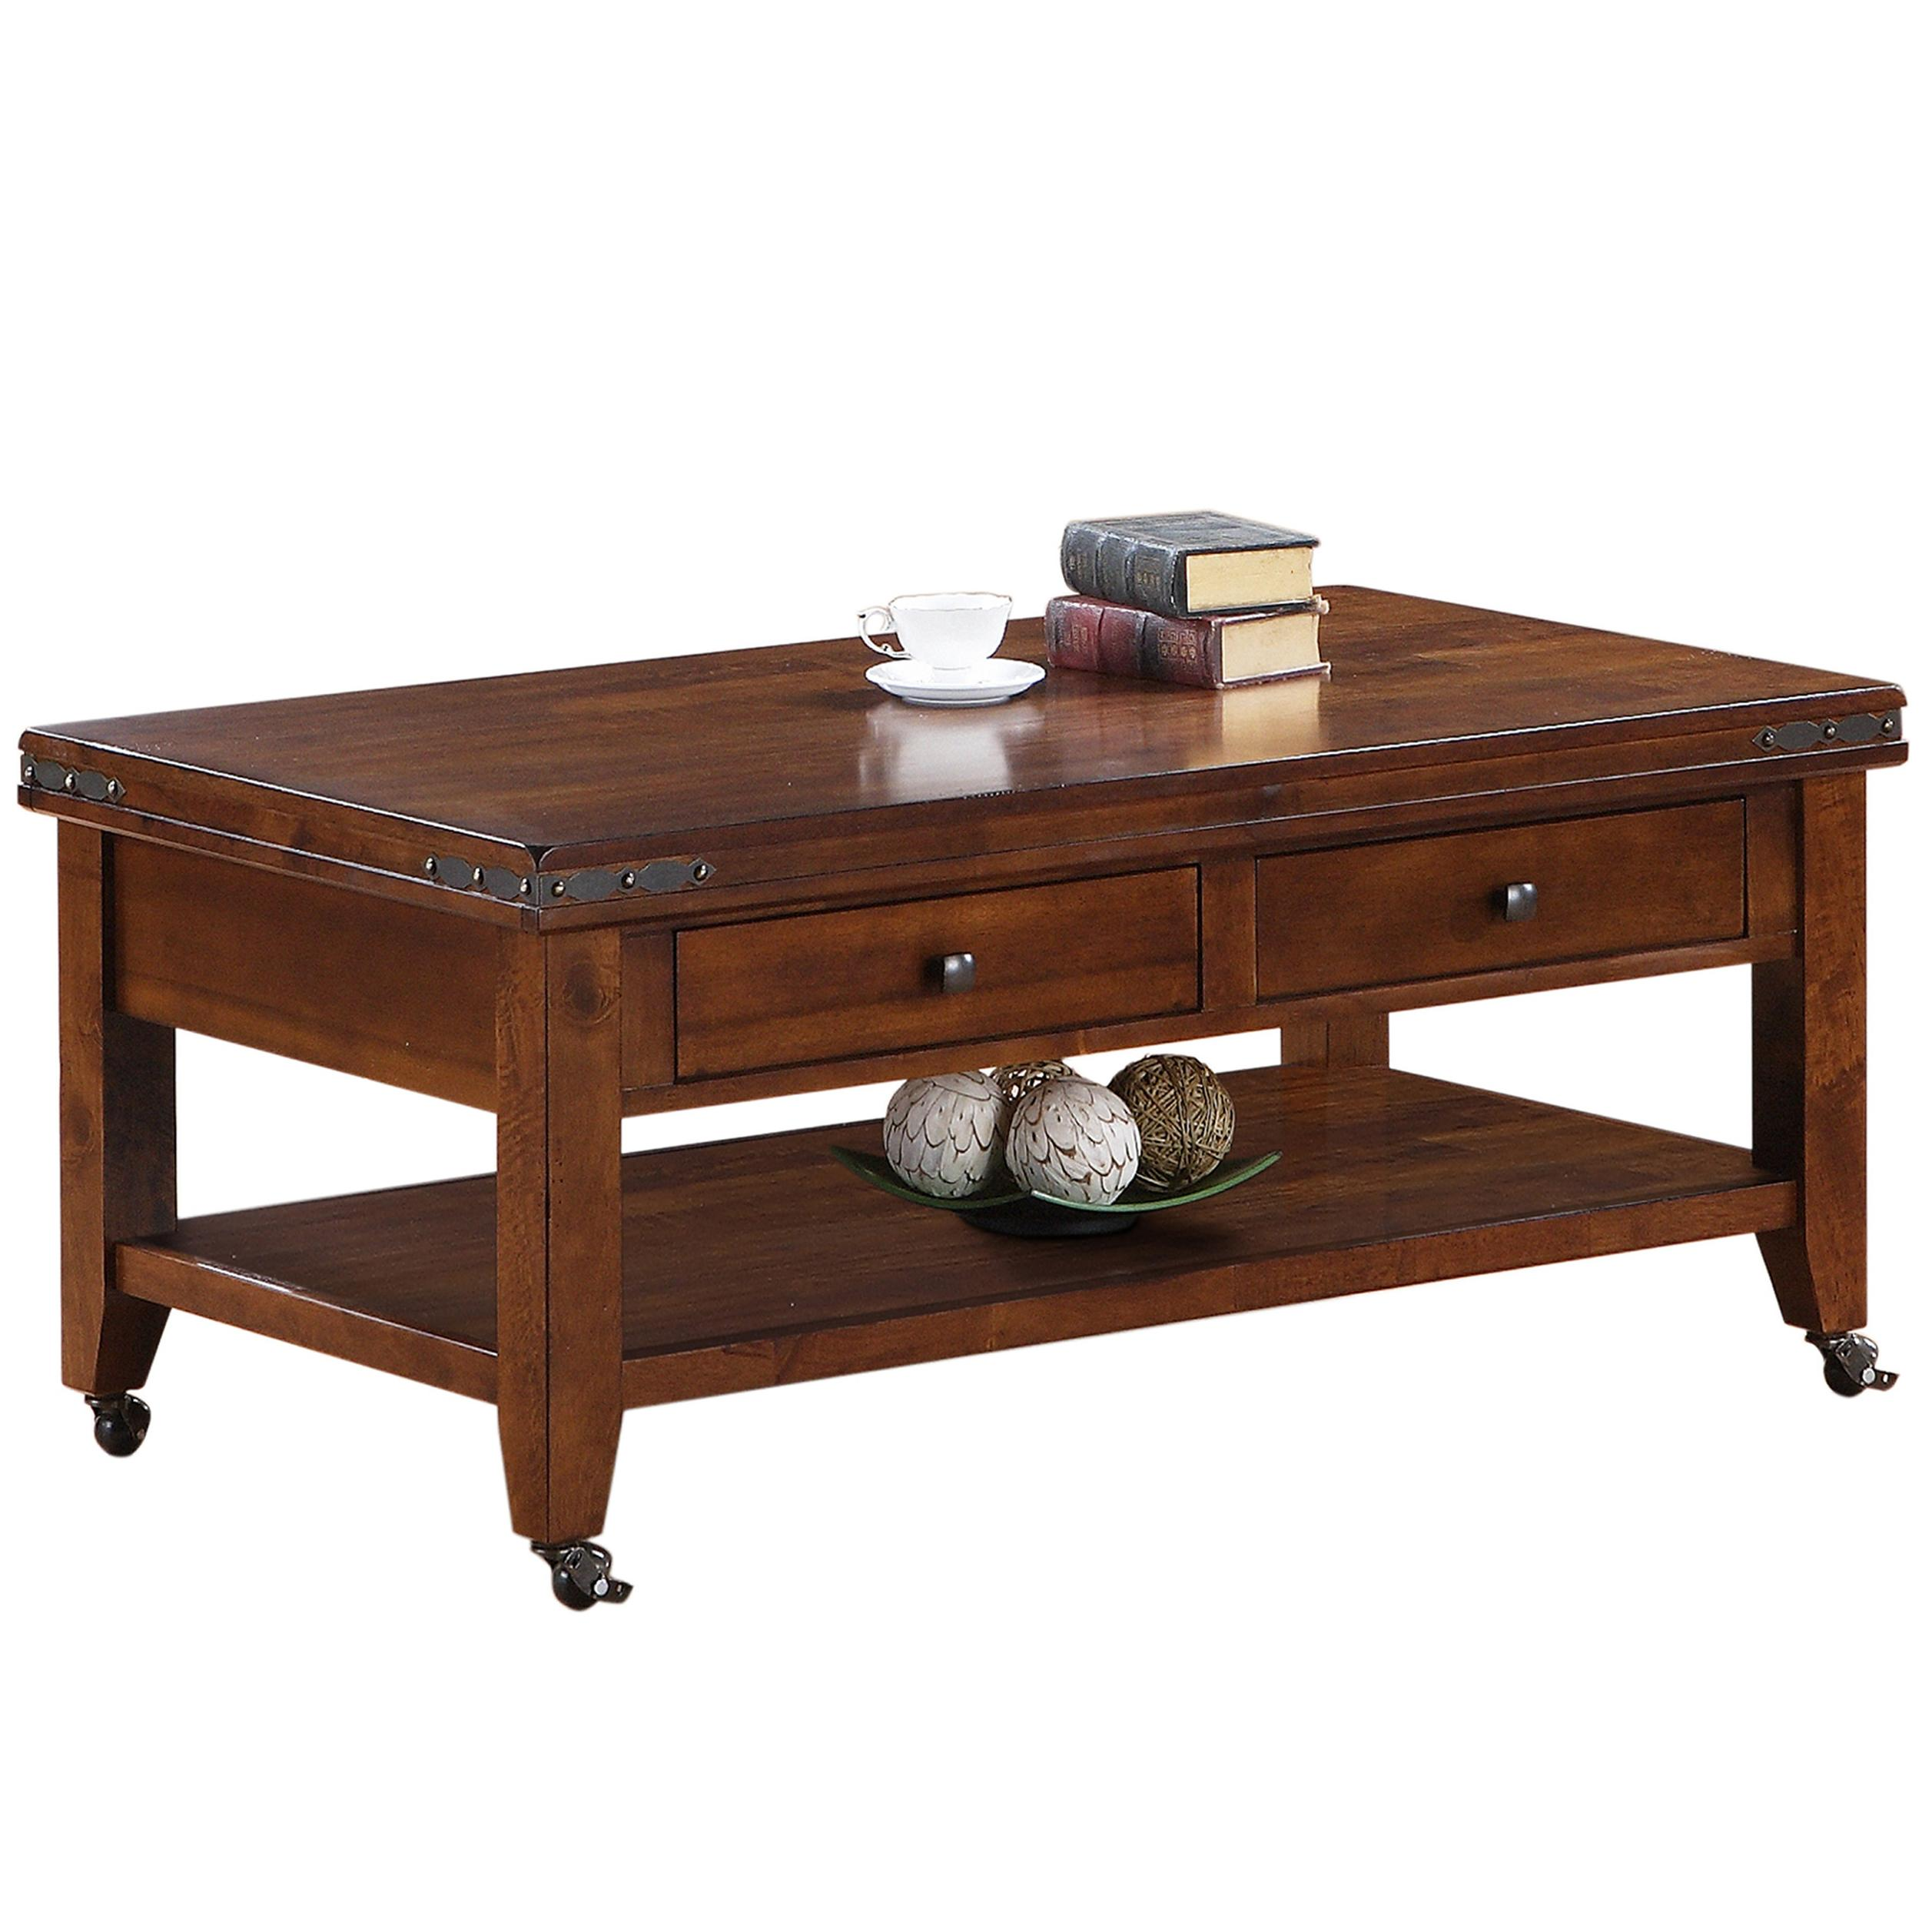 Layton Cocktail Table by HH at Walker's Furniture